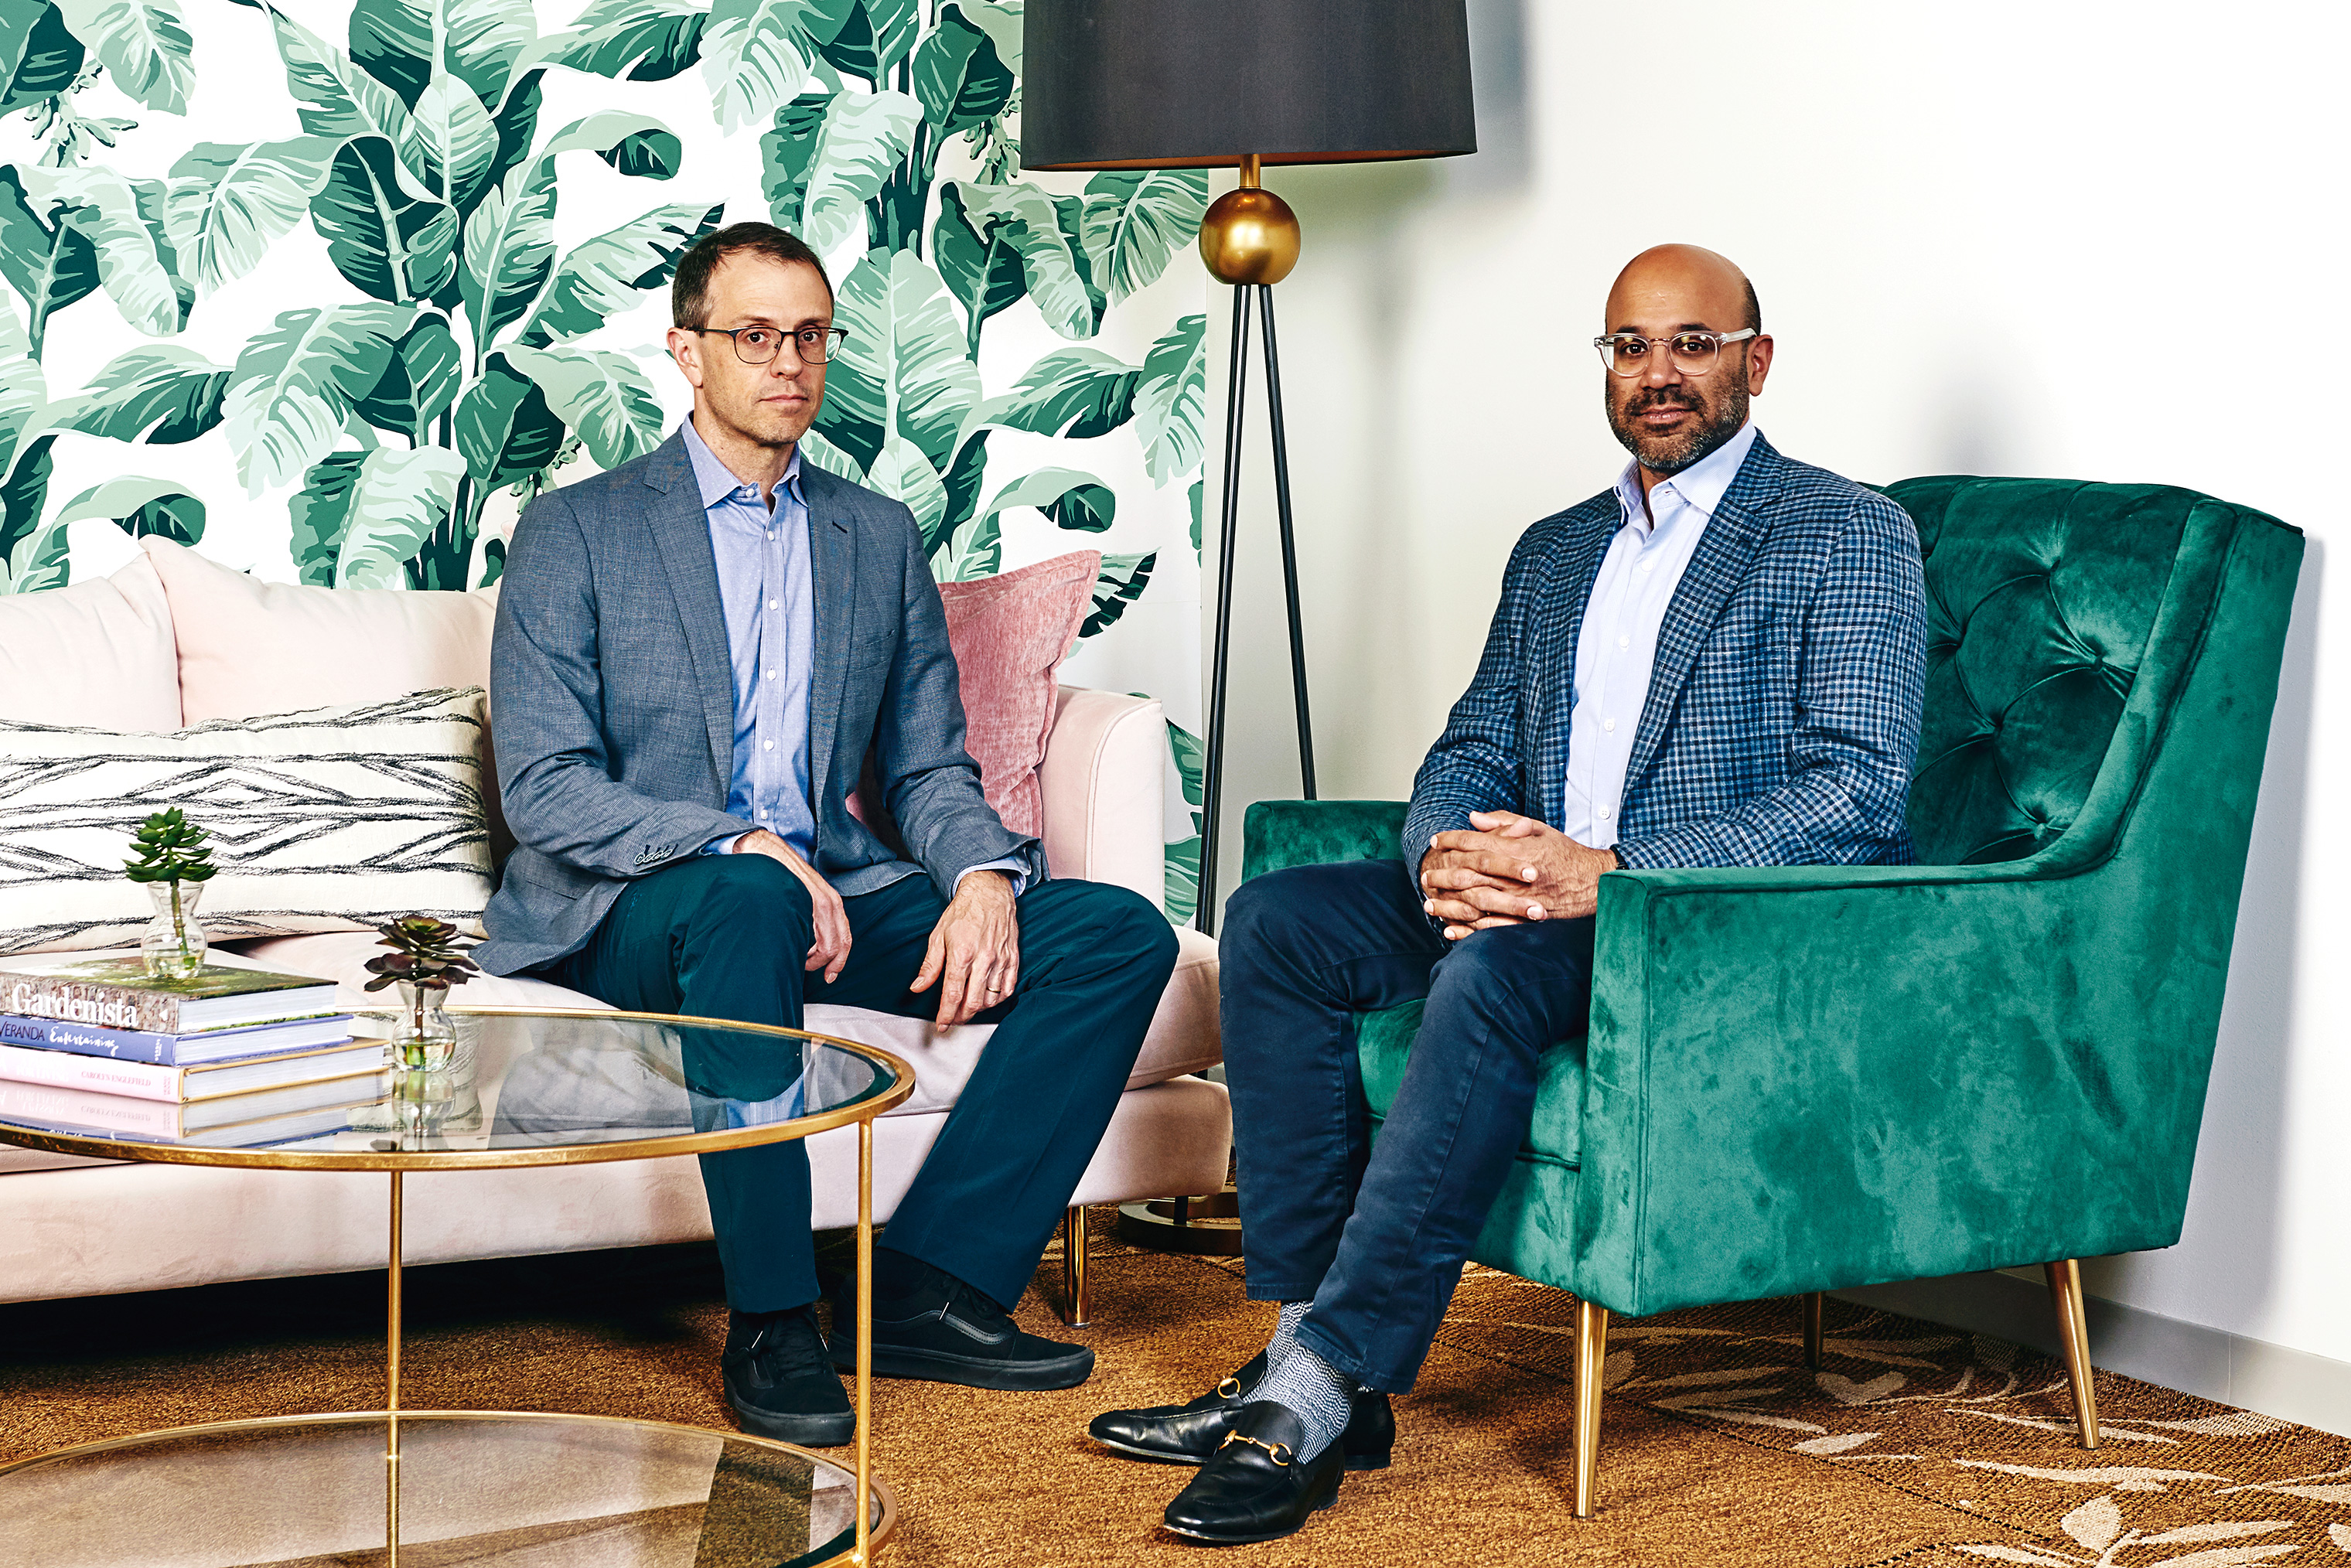 Wayfair cofounders Steve Conine (left) and Niraj Shah.